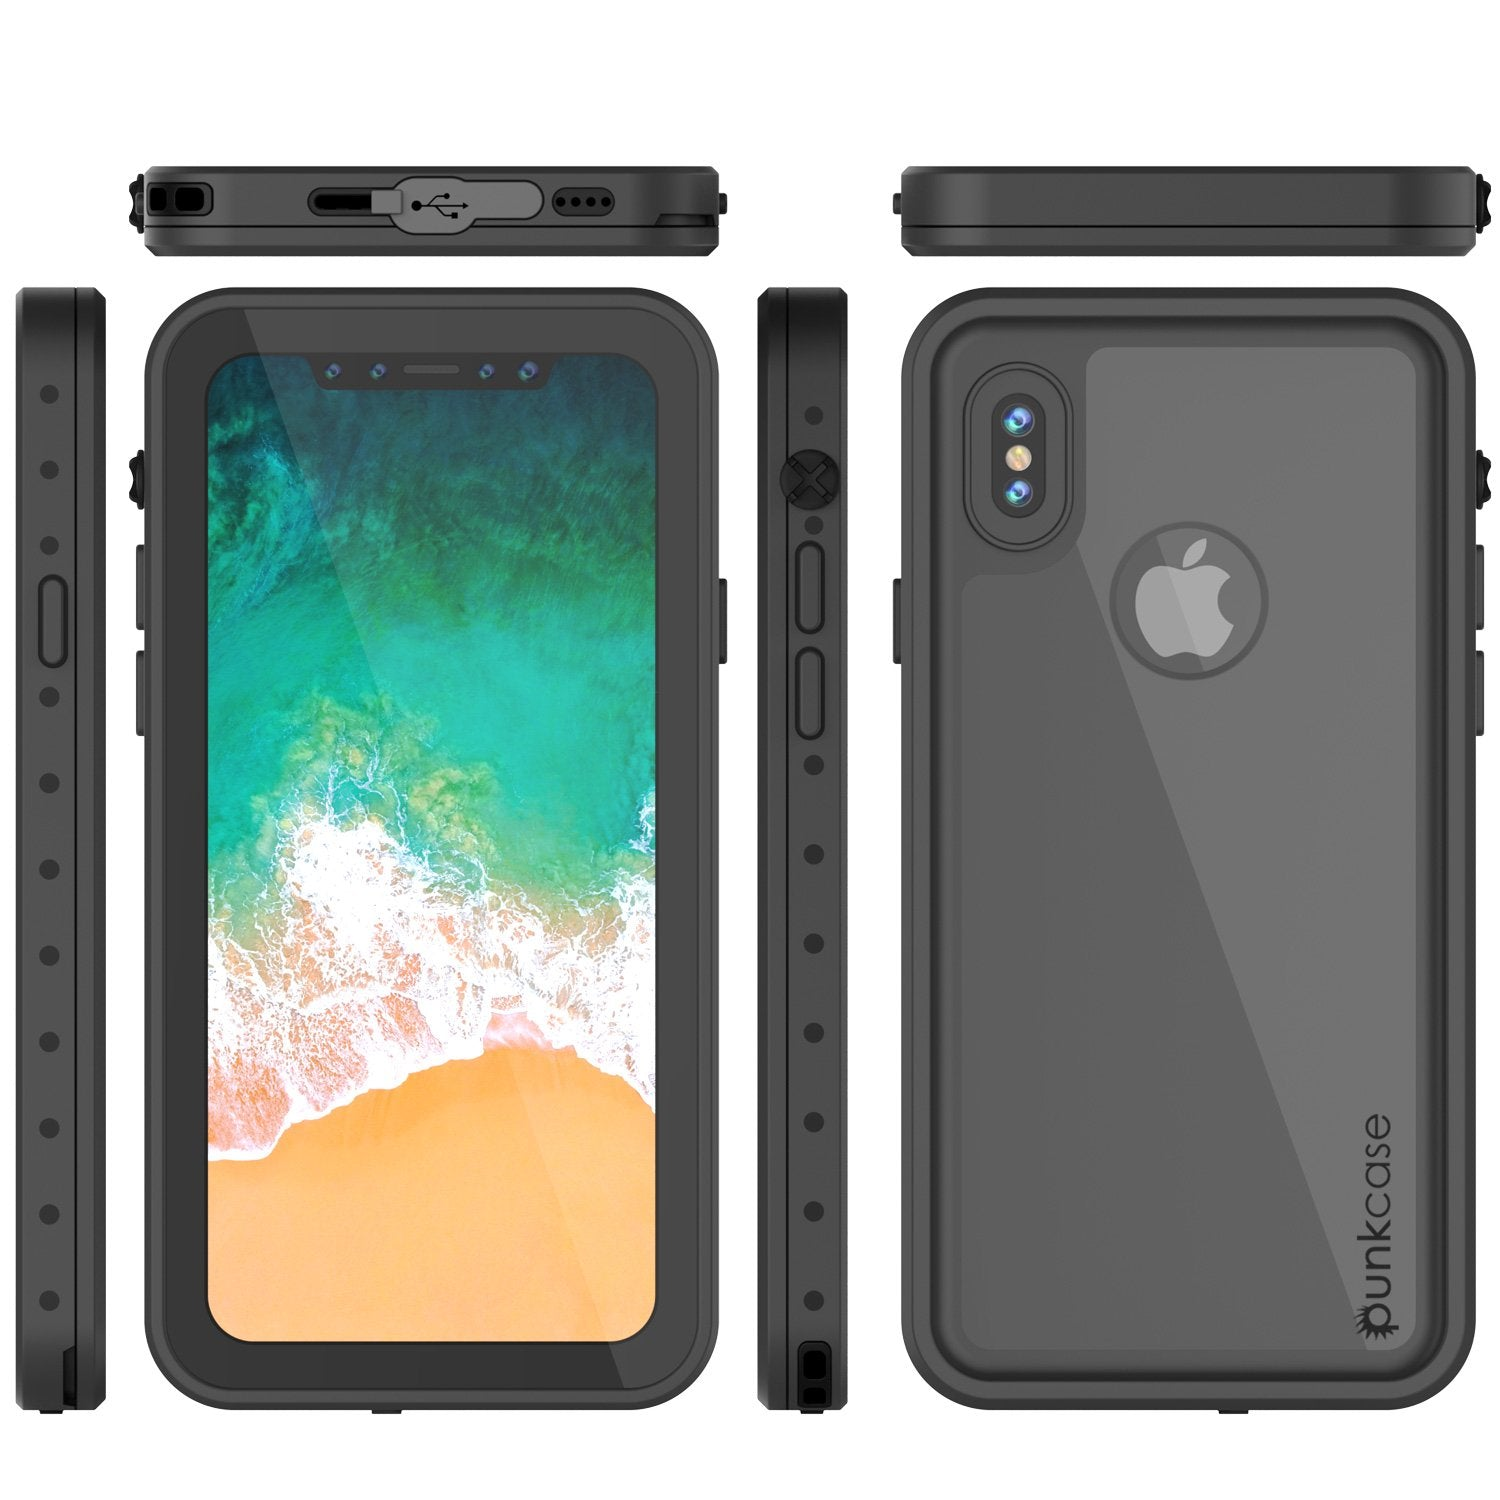 iPhone X Plus Waterproof Case, Punkcase StudStar Series Cover [Black]